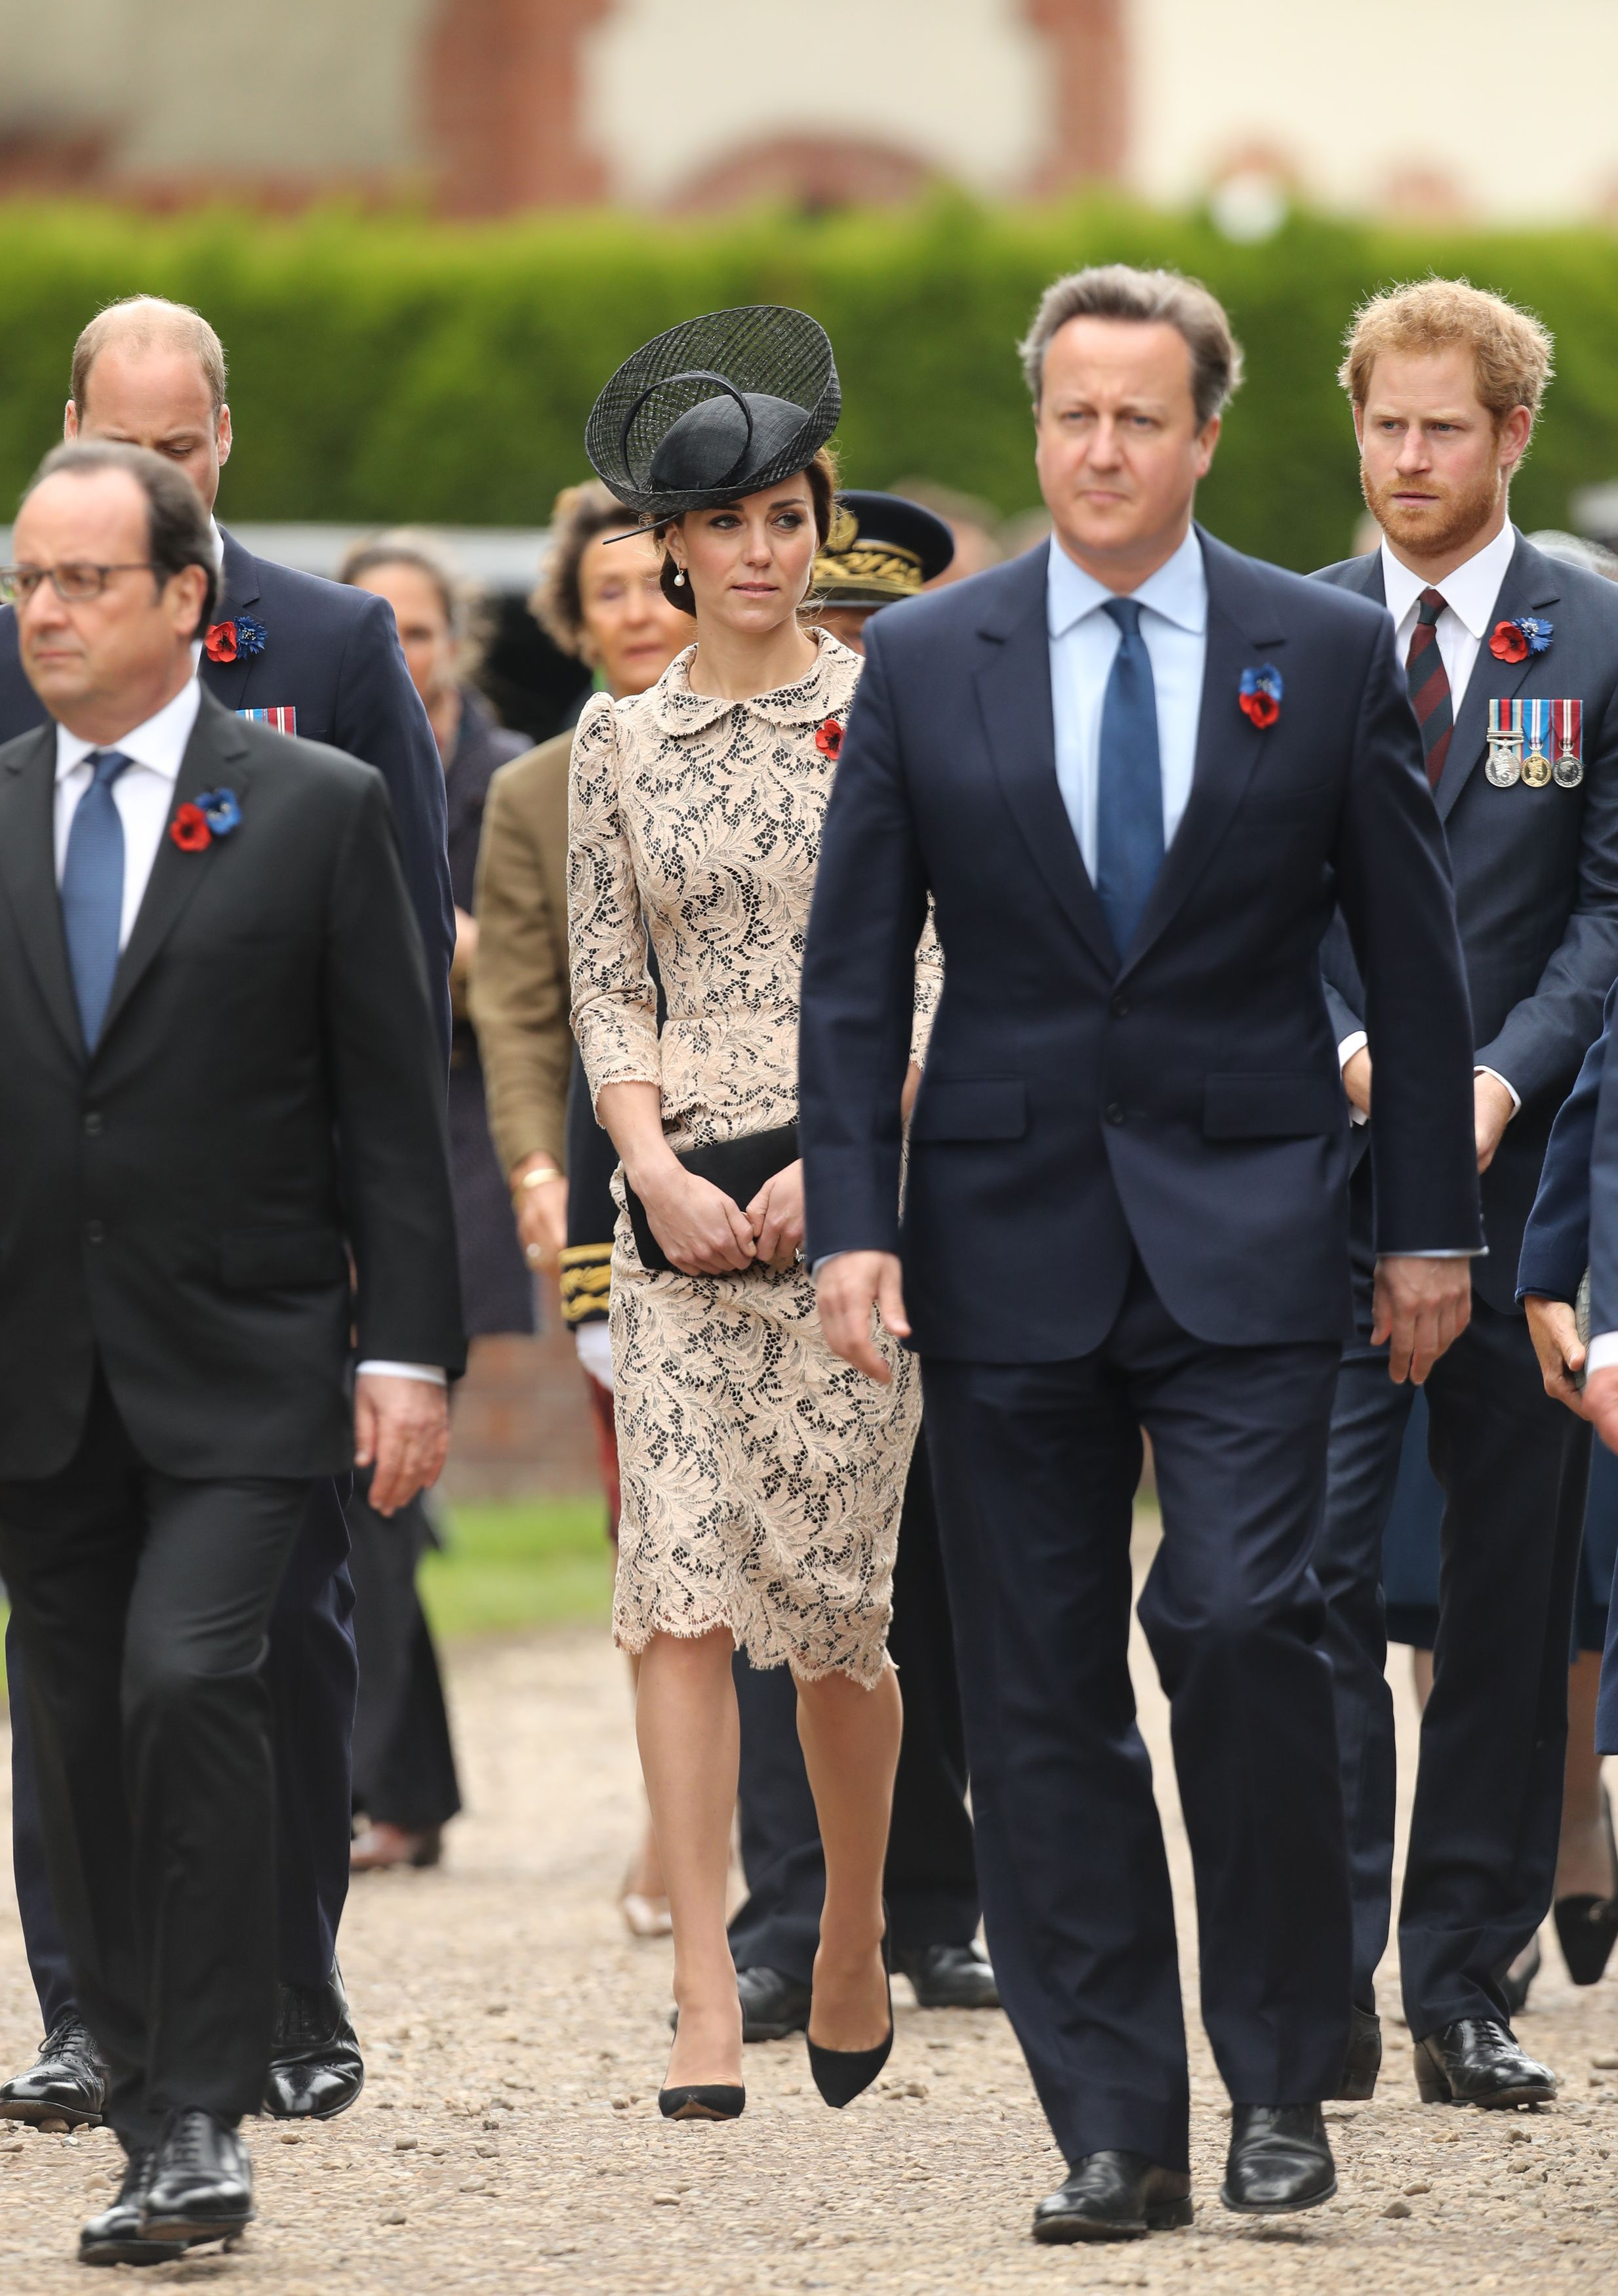 THIEPVAL, FRANCE - JULY 1: Catherine, Duchess of Cambridge and Prince Harry attend a service to mark the 100th anniversary of the beginning of the Battle of the Somme at the Thiepval memorial to the Missing on July 1, 2016 in Thiepval, France. The event is part of the Commemoration of the Centenary of the Battle of the Somme at the Commonwealth War Graves Commission Thiepval Memorial in Thiepval, France, where 70,000 British and Commonwealth soldiers with no known grave are commemorated. (Photo by Chris Radburn - Pool/Getty Images)